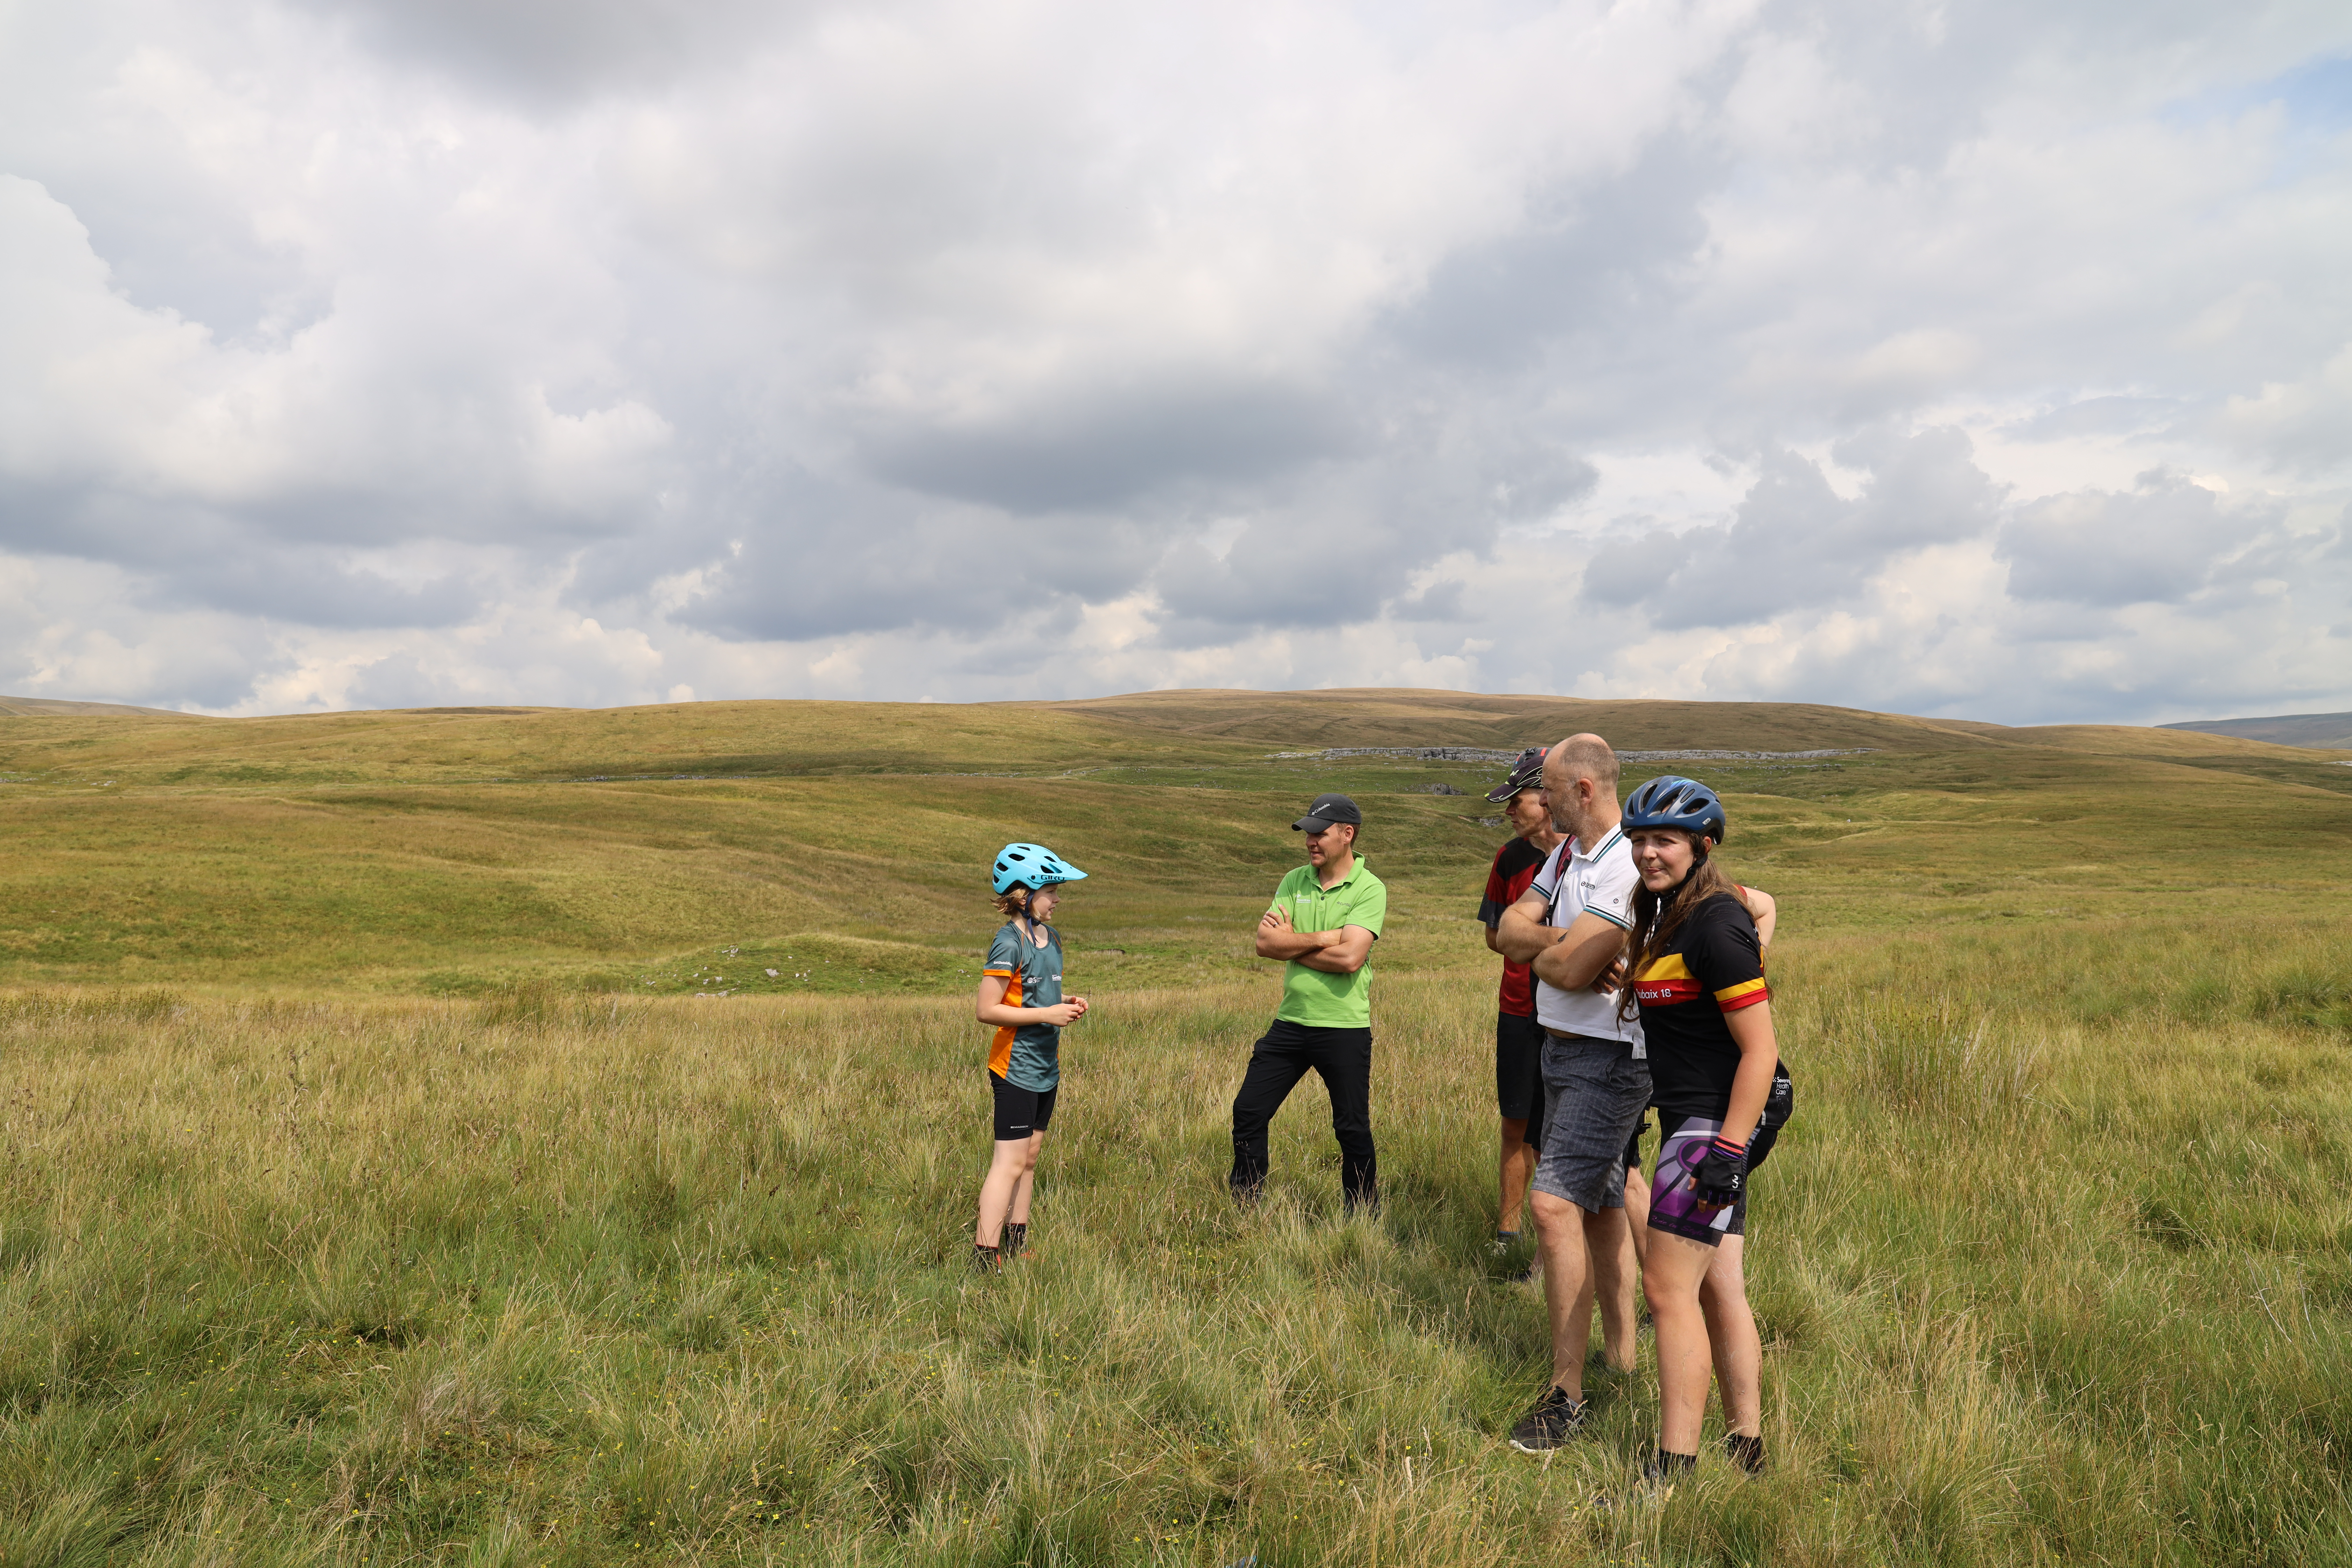 Cyclists and film crew atop a hill in the Dales, for Cycle the Dales promotional video with Pocket Projects